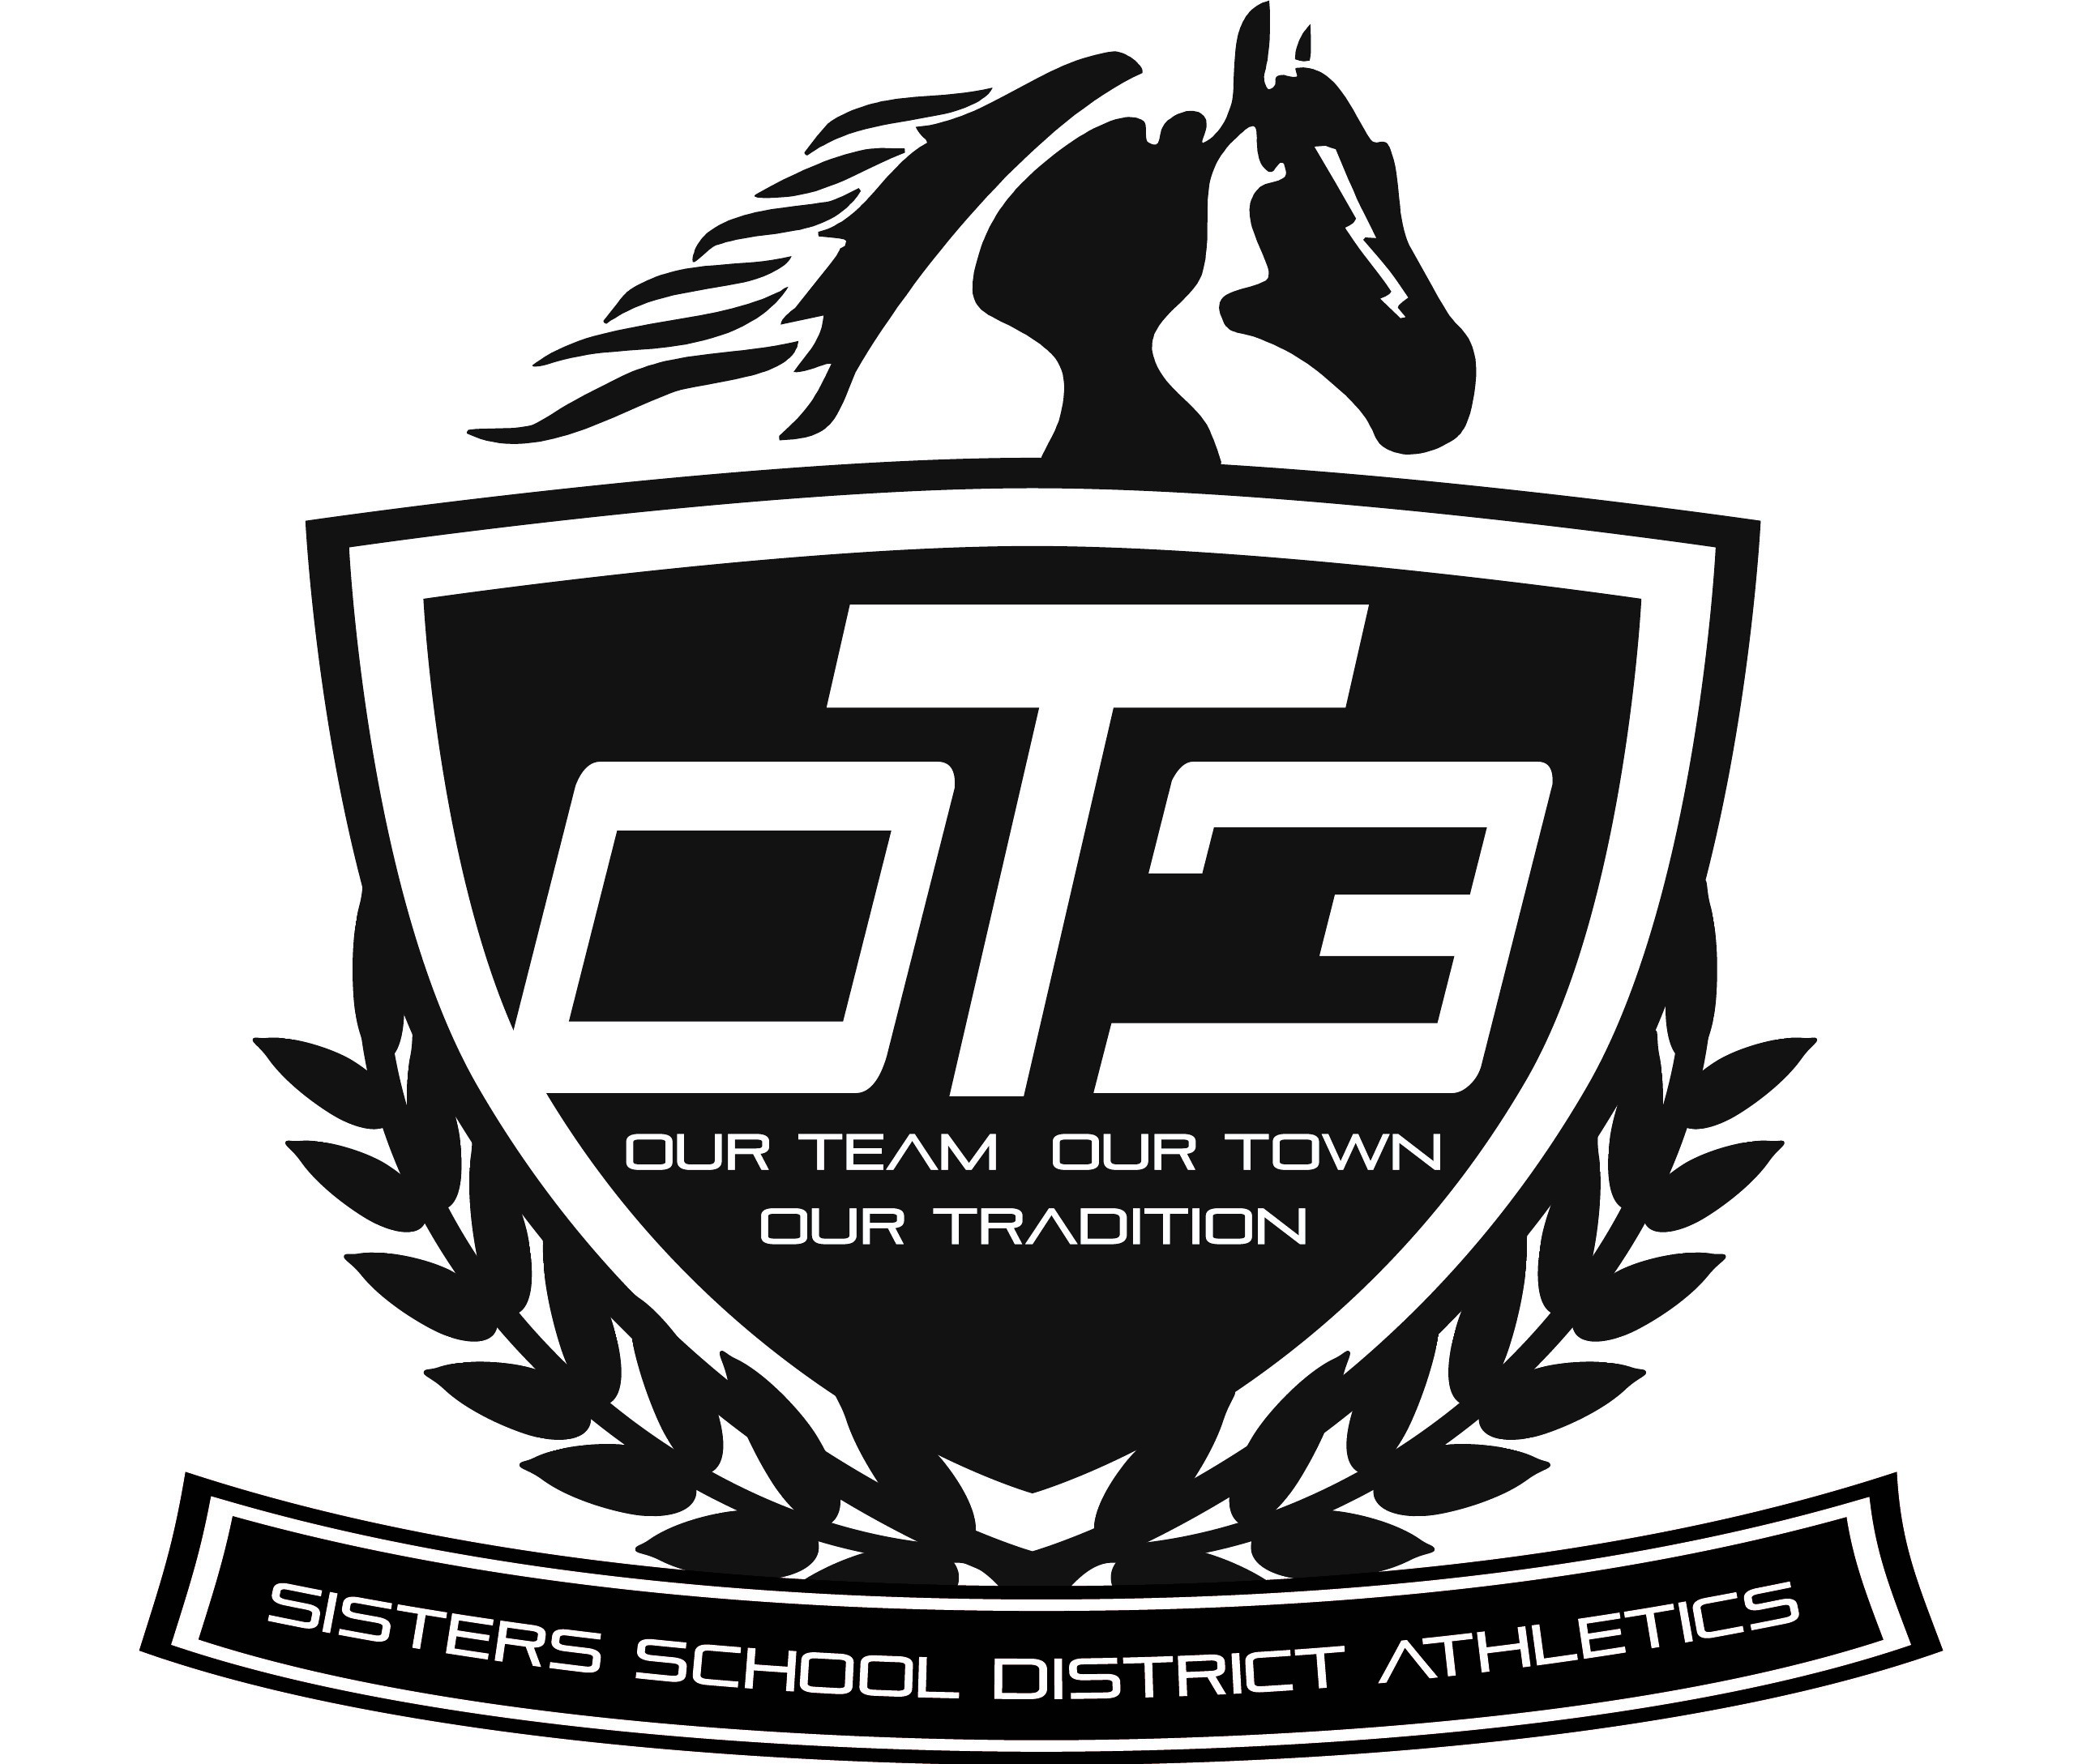 OT3 District